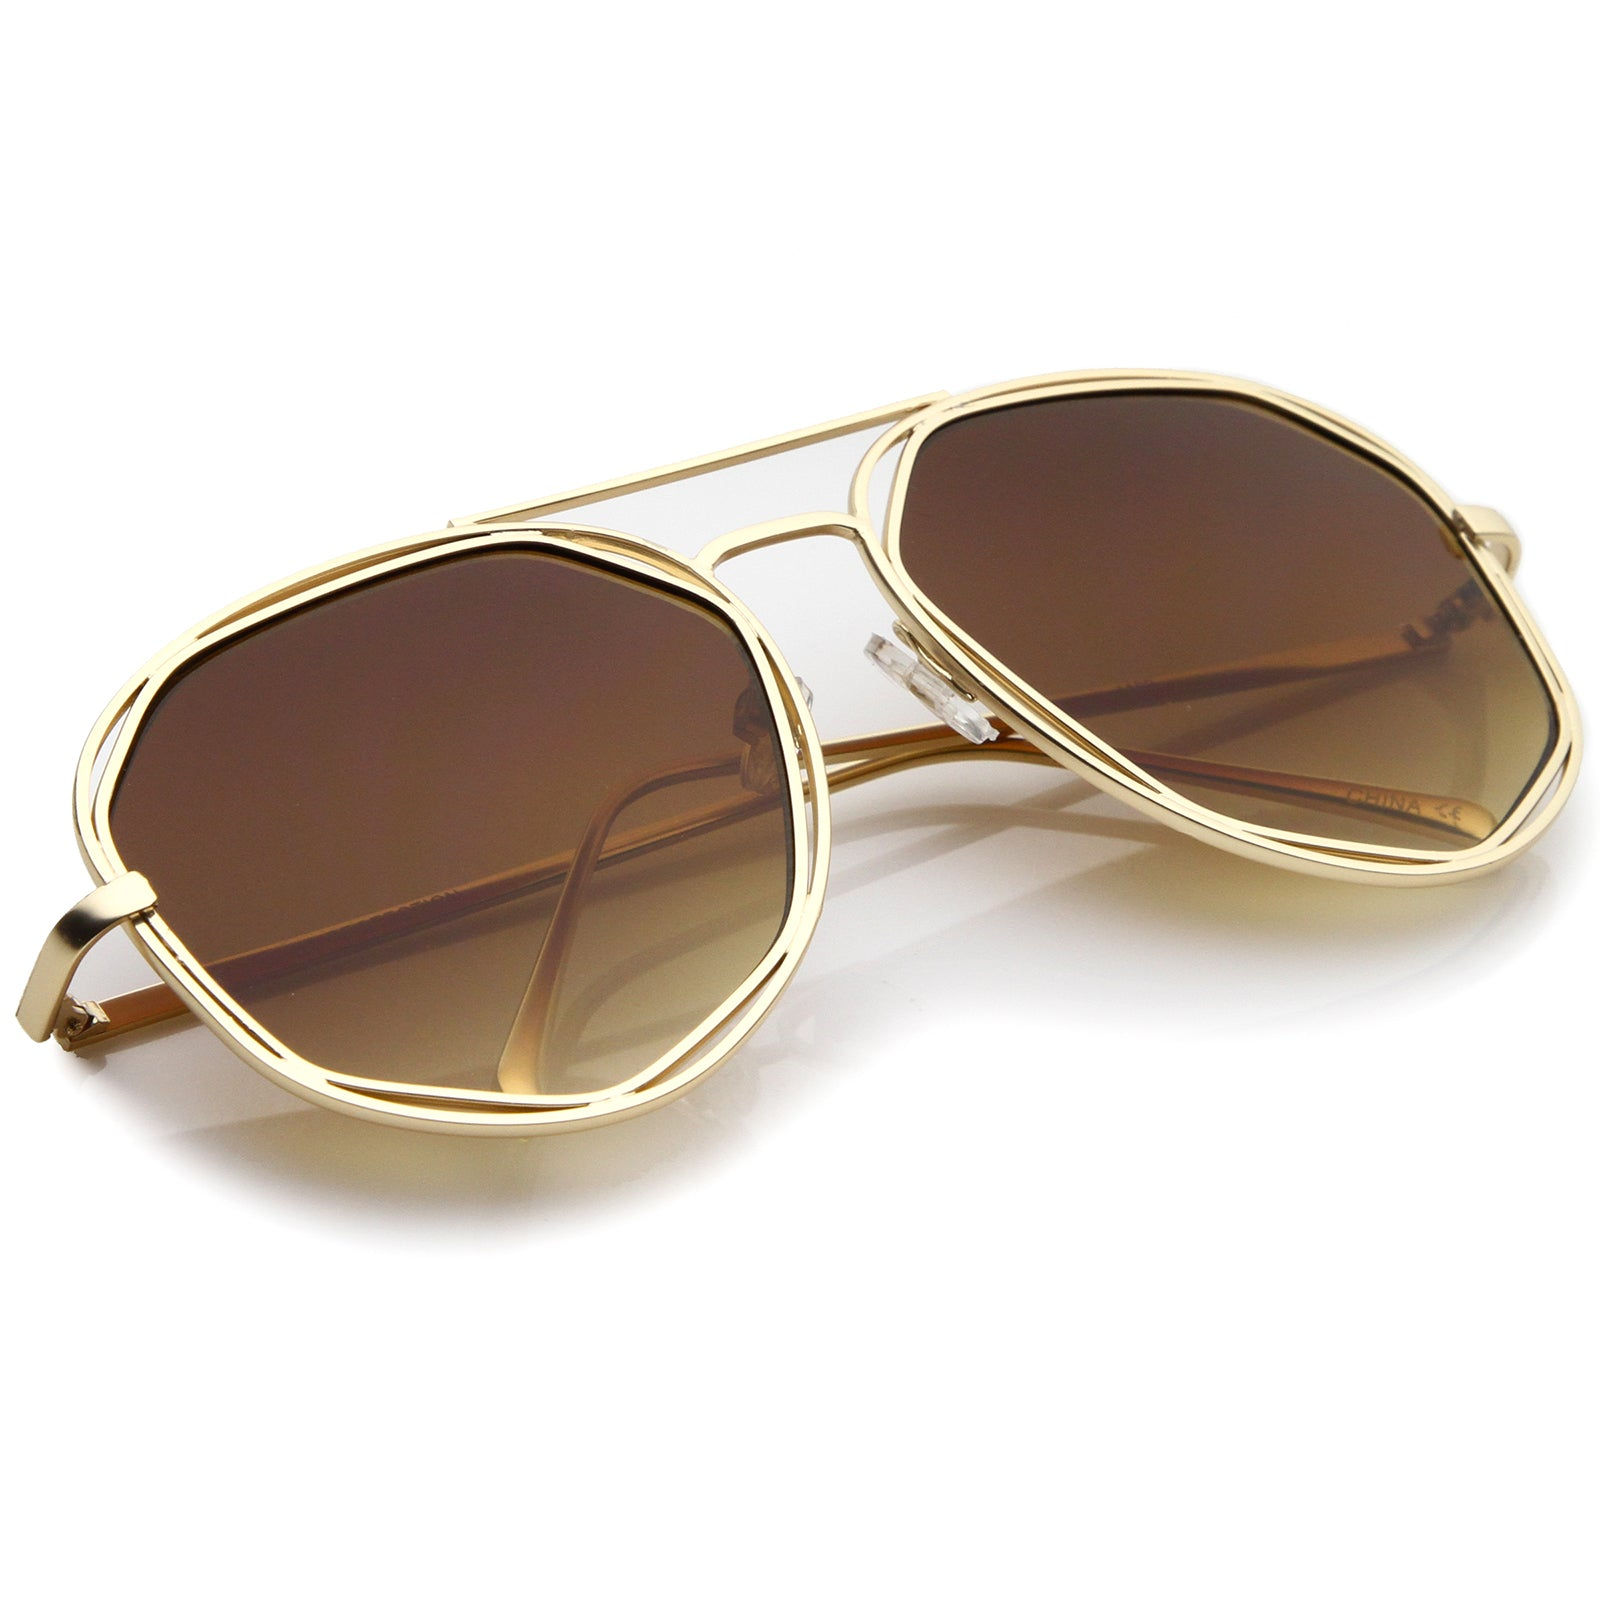 Geometric Hexagonal Metal Frame Neutral Colored Flat Lens Aviator Sunglasses 60mm - sunglass.la - 4